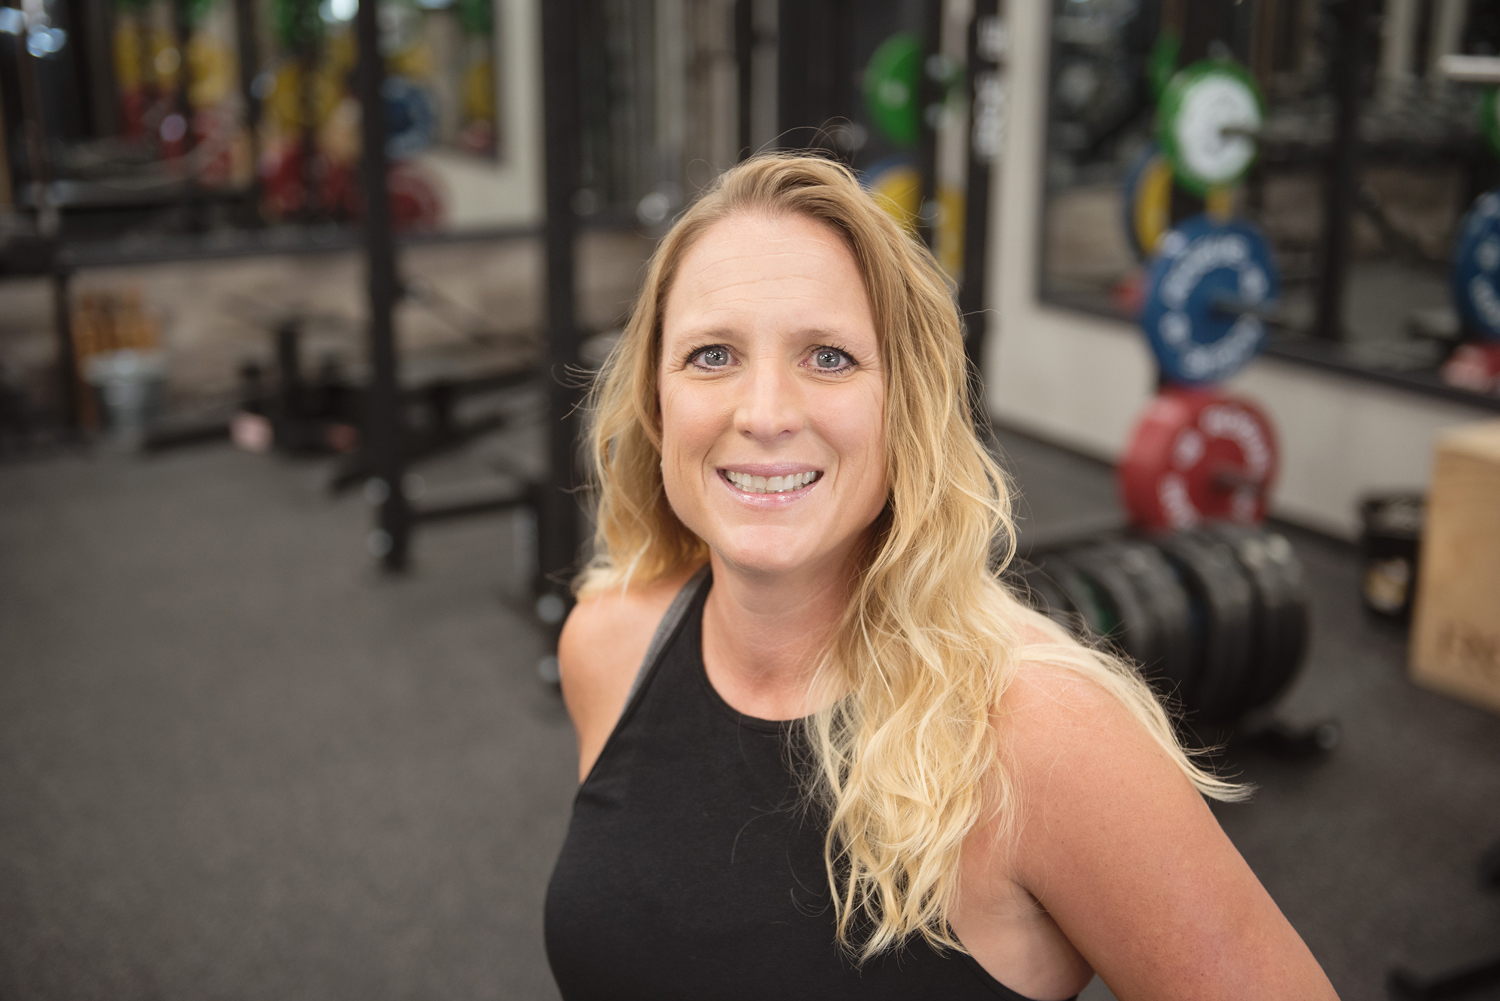 andrea wilson - personal trainer